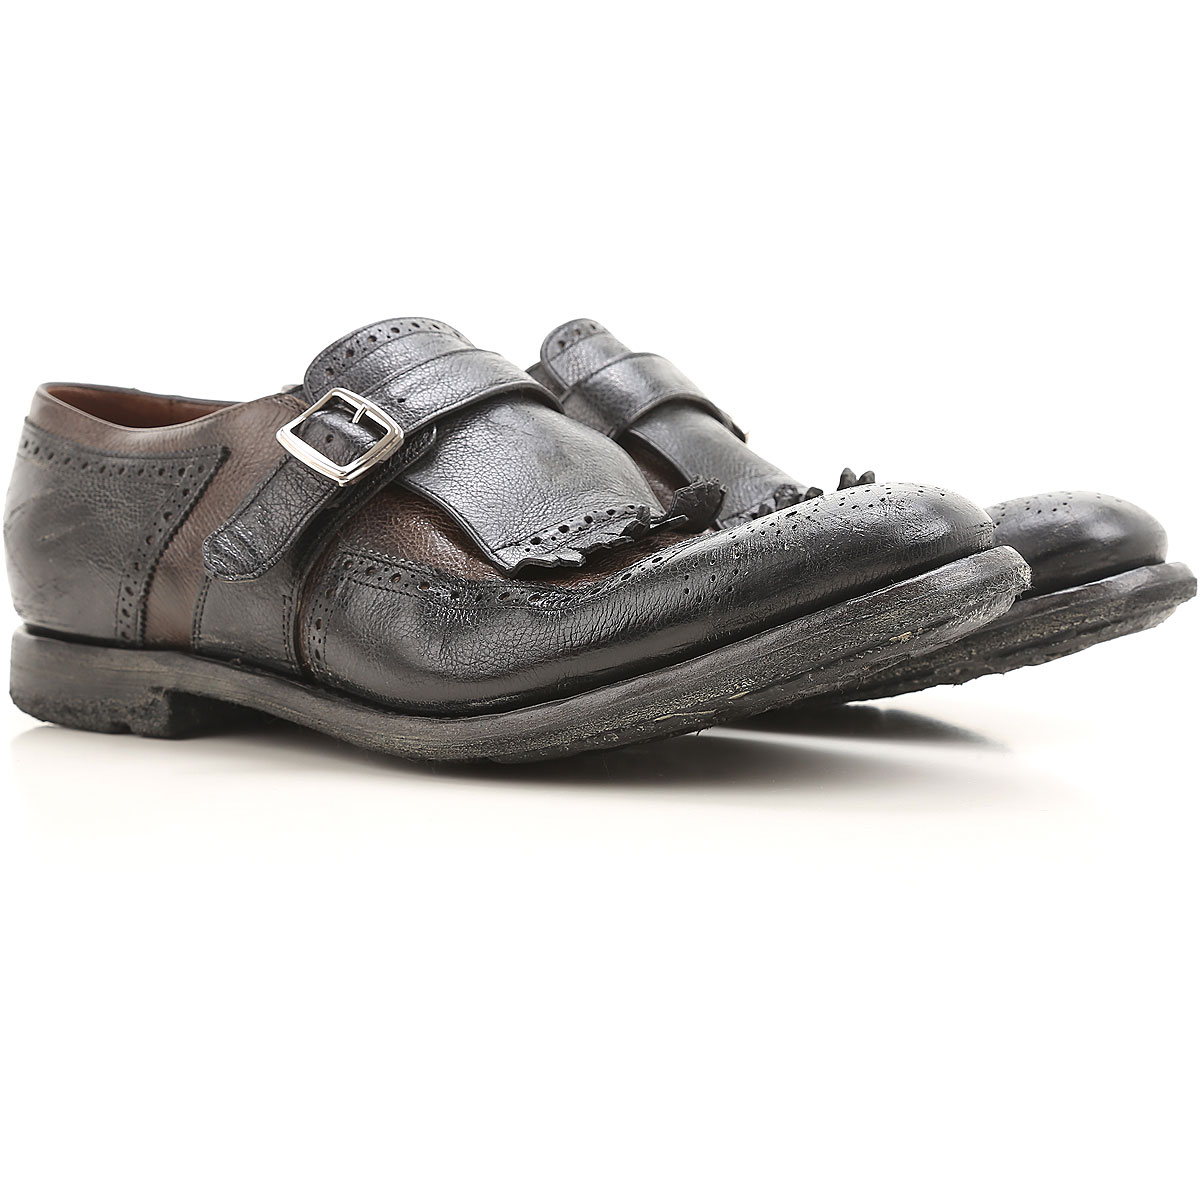 Image of Church's Monk Strap Shoes for Men On Sale, Black, Leather, 2017, 10 10.5 11 7 7.5 8.5 9 9.5